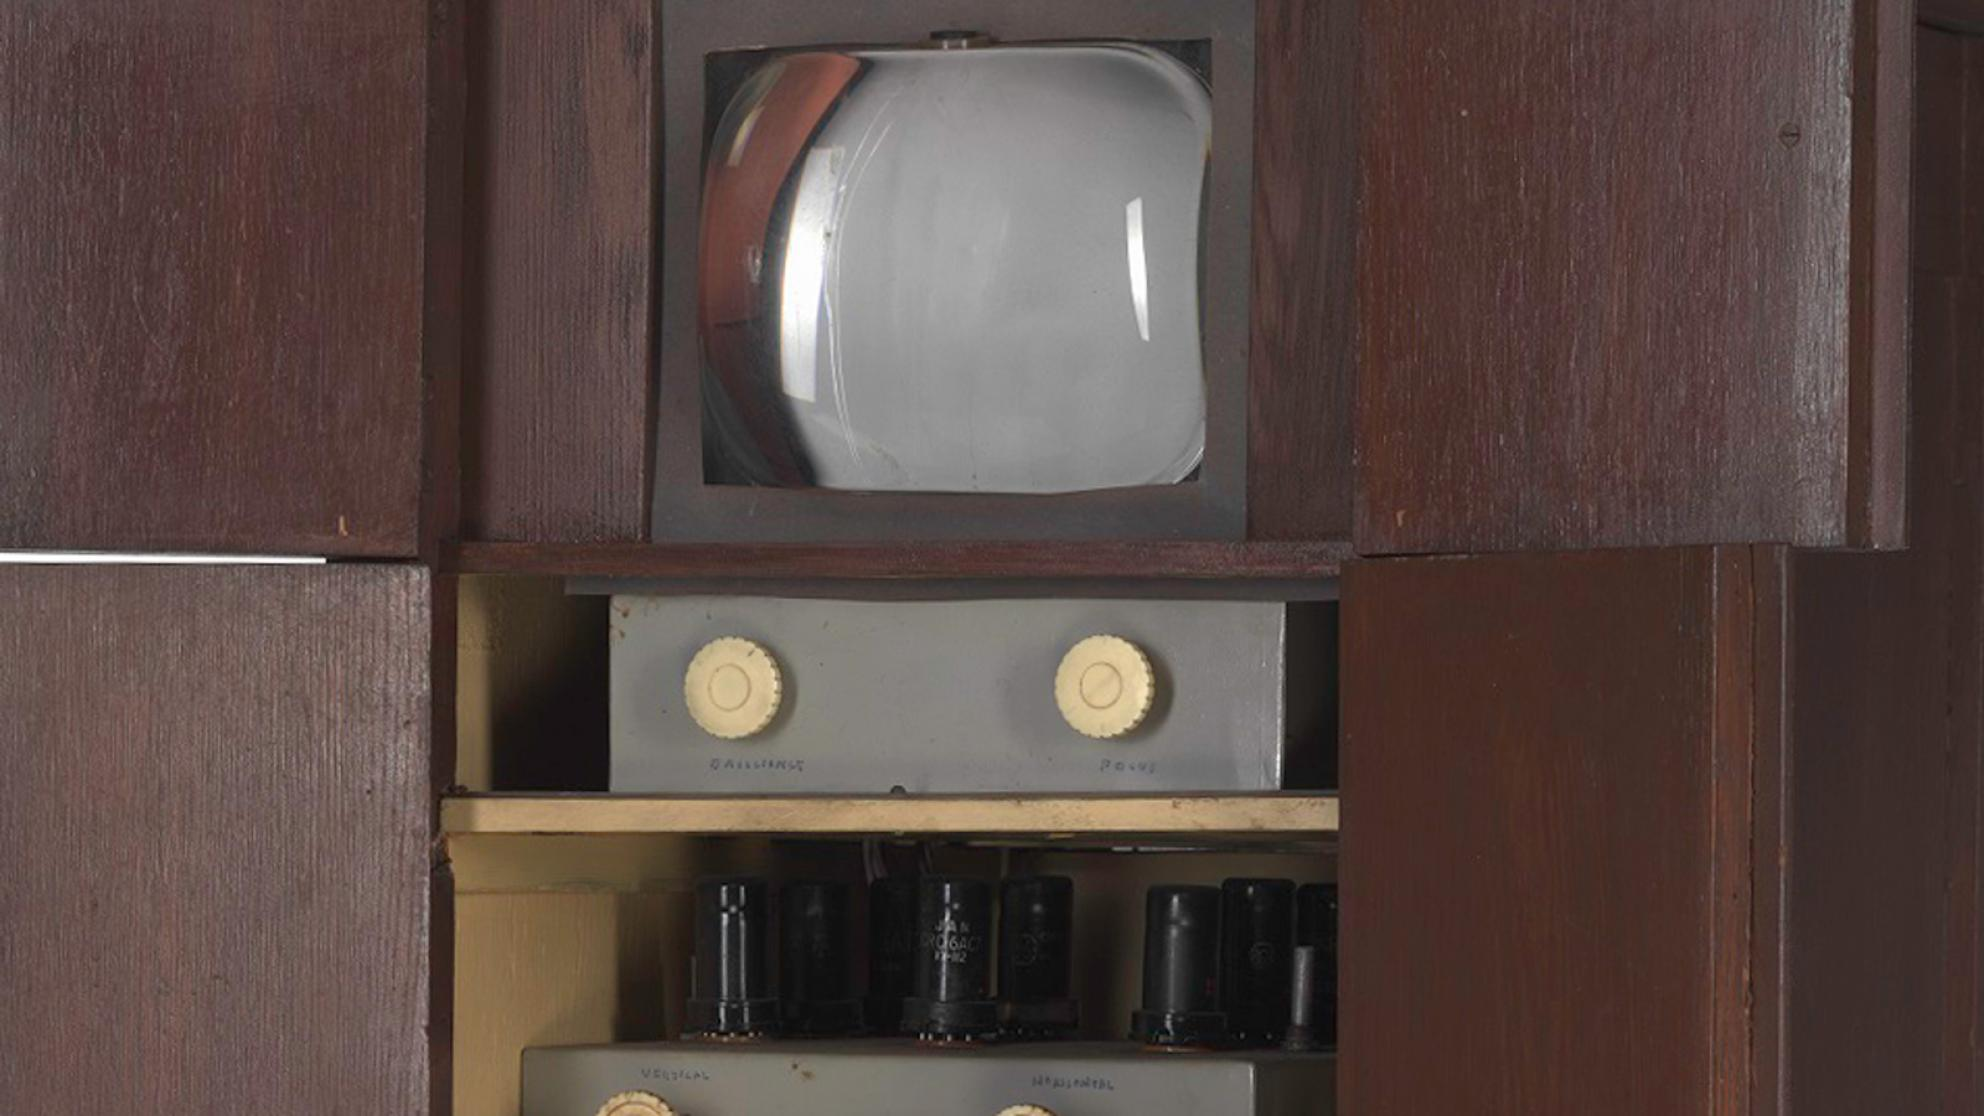 Close up of Sid Oldroyd's homemade TV showing screen and dials inside a wooden cabinet, built in 1956.